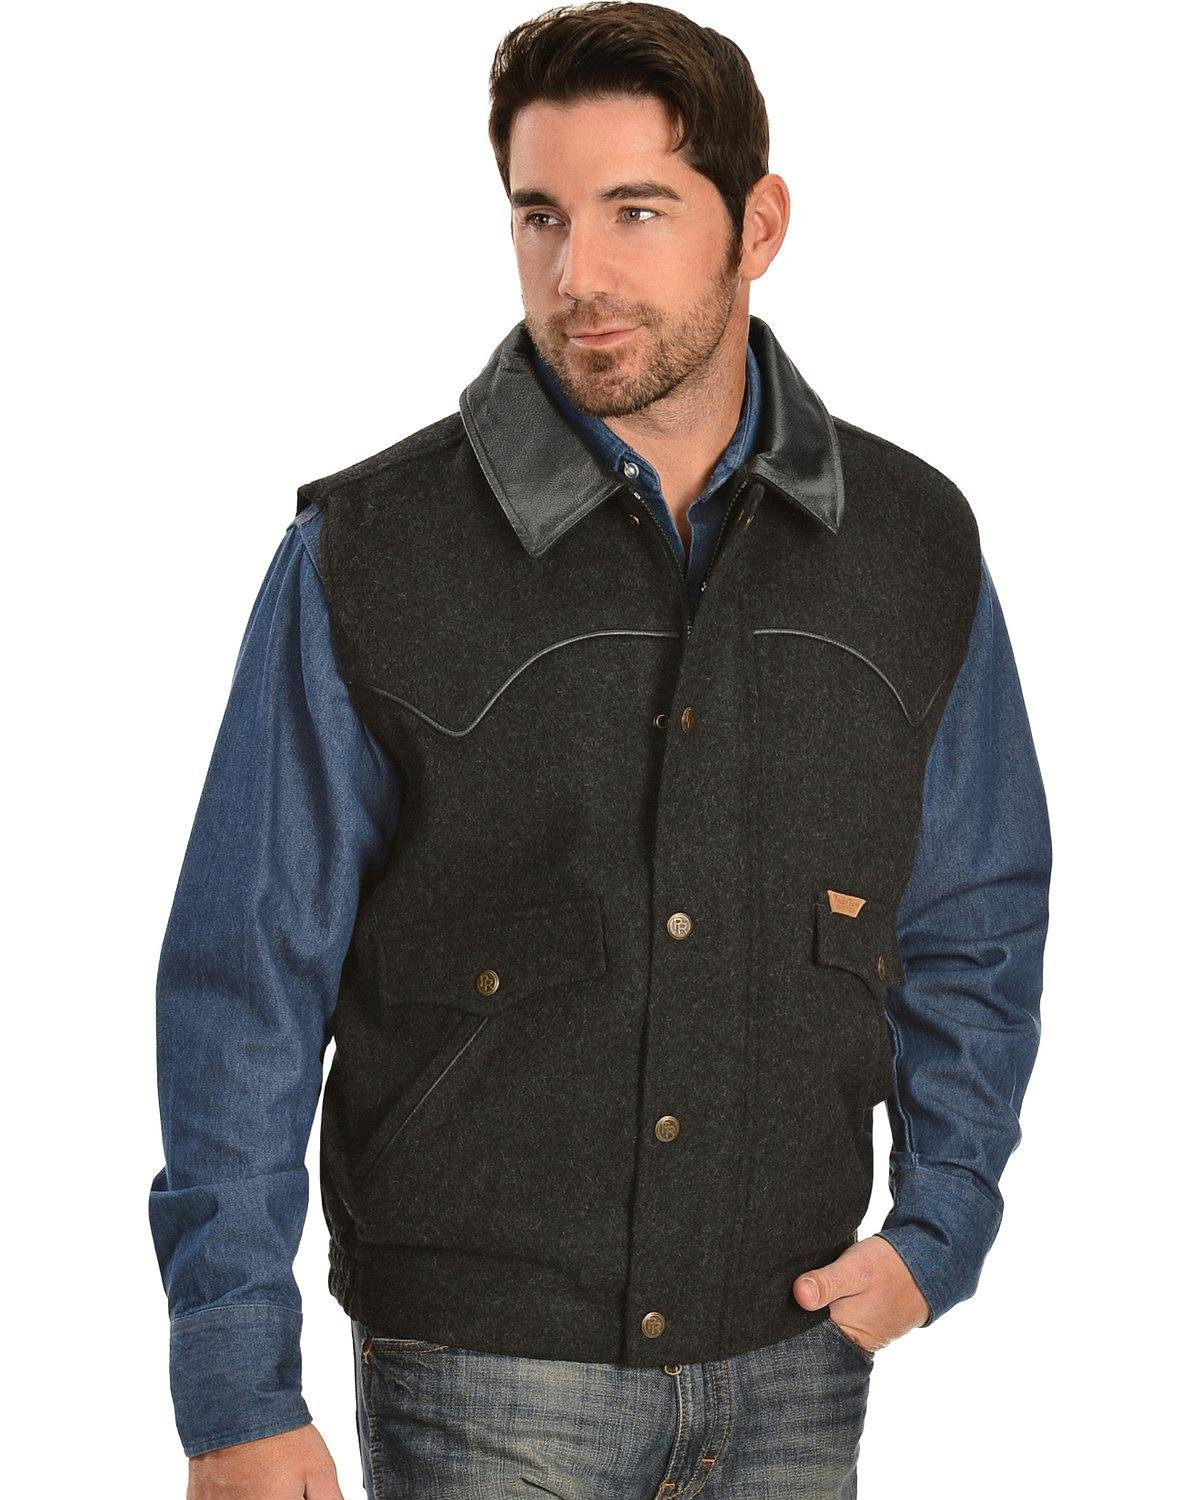 Powder River Outfitters Men's Snap-Front Wool Vest Black Large